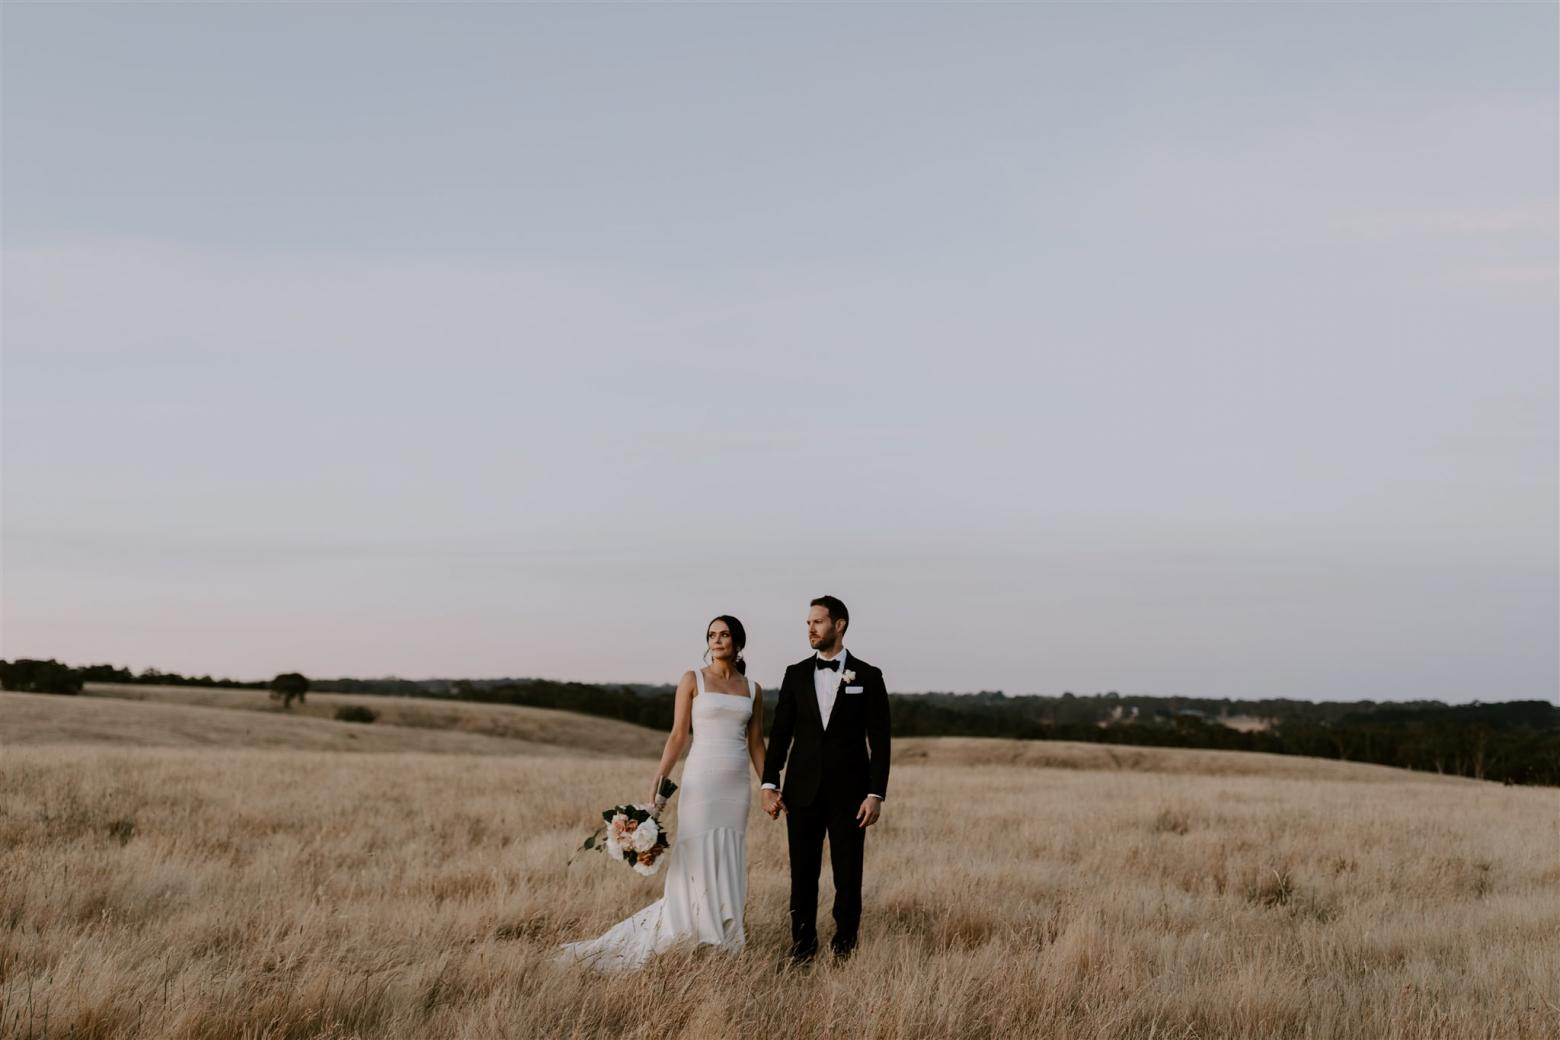 KWH bride Rachael and Adam in a picturesque field. Rachael wears the Violet gown.